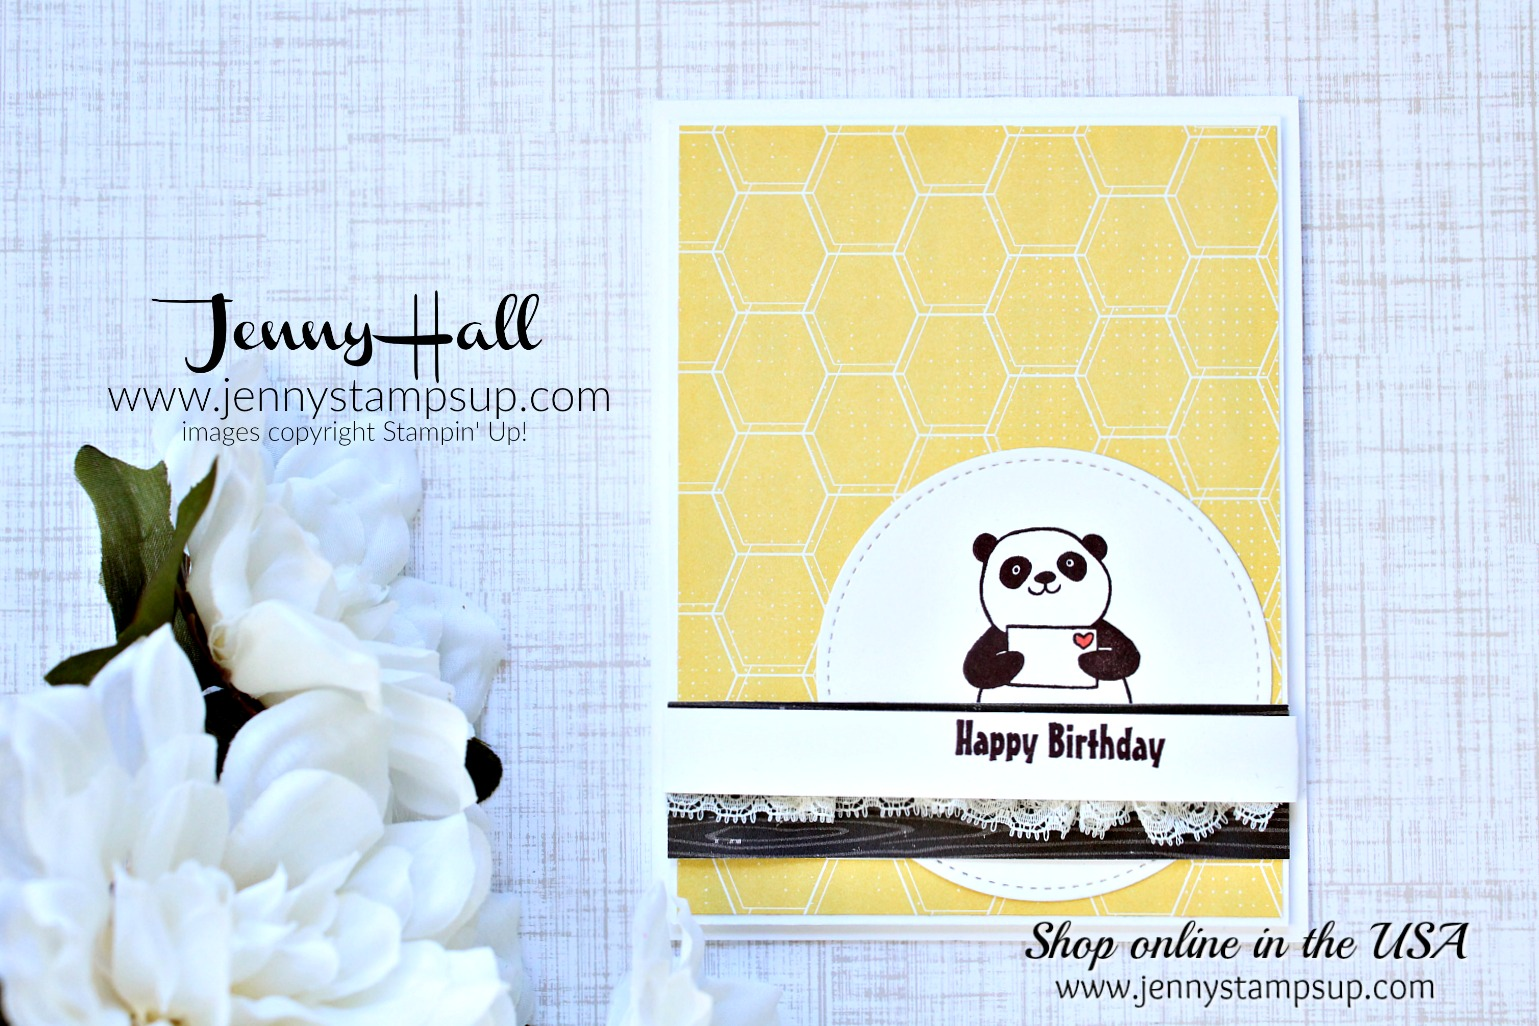 Party Pandas card by Jenny Hall at www.jennystampsup.com for #cardmaking #cardmaker #kidfriendlycraft #stitchedshapesframelits #honeybear #bubblesandfizzdsp #wwys #whatwillyoustamp #stampinup #cardmakingvideo #jennyhalldesign #jennystampsup #jennyhallstampinup #papercraft #artsandcrafts #diy